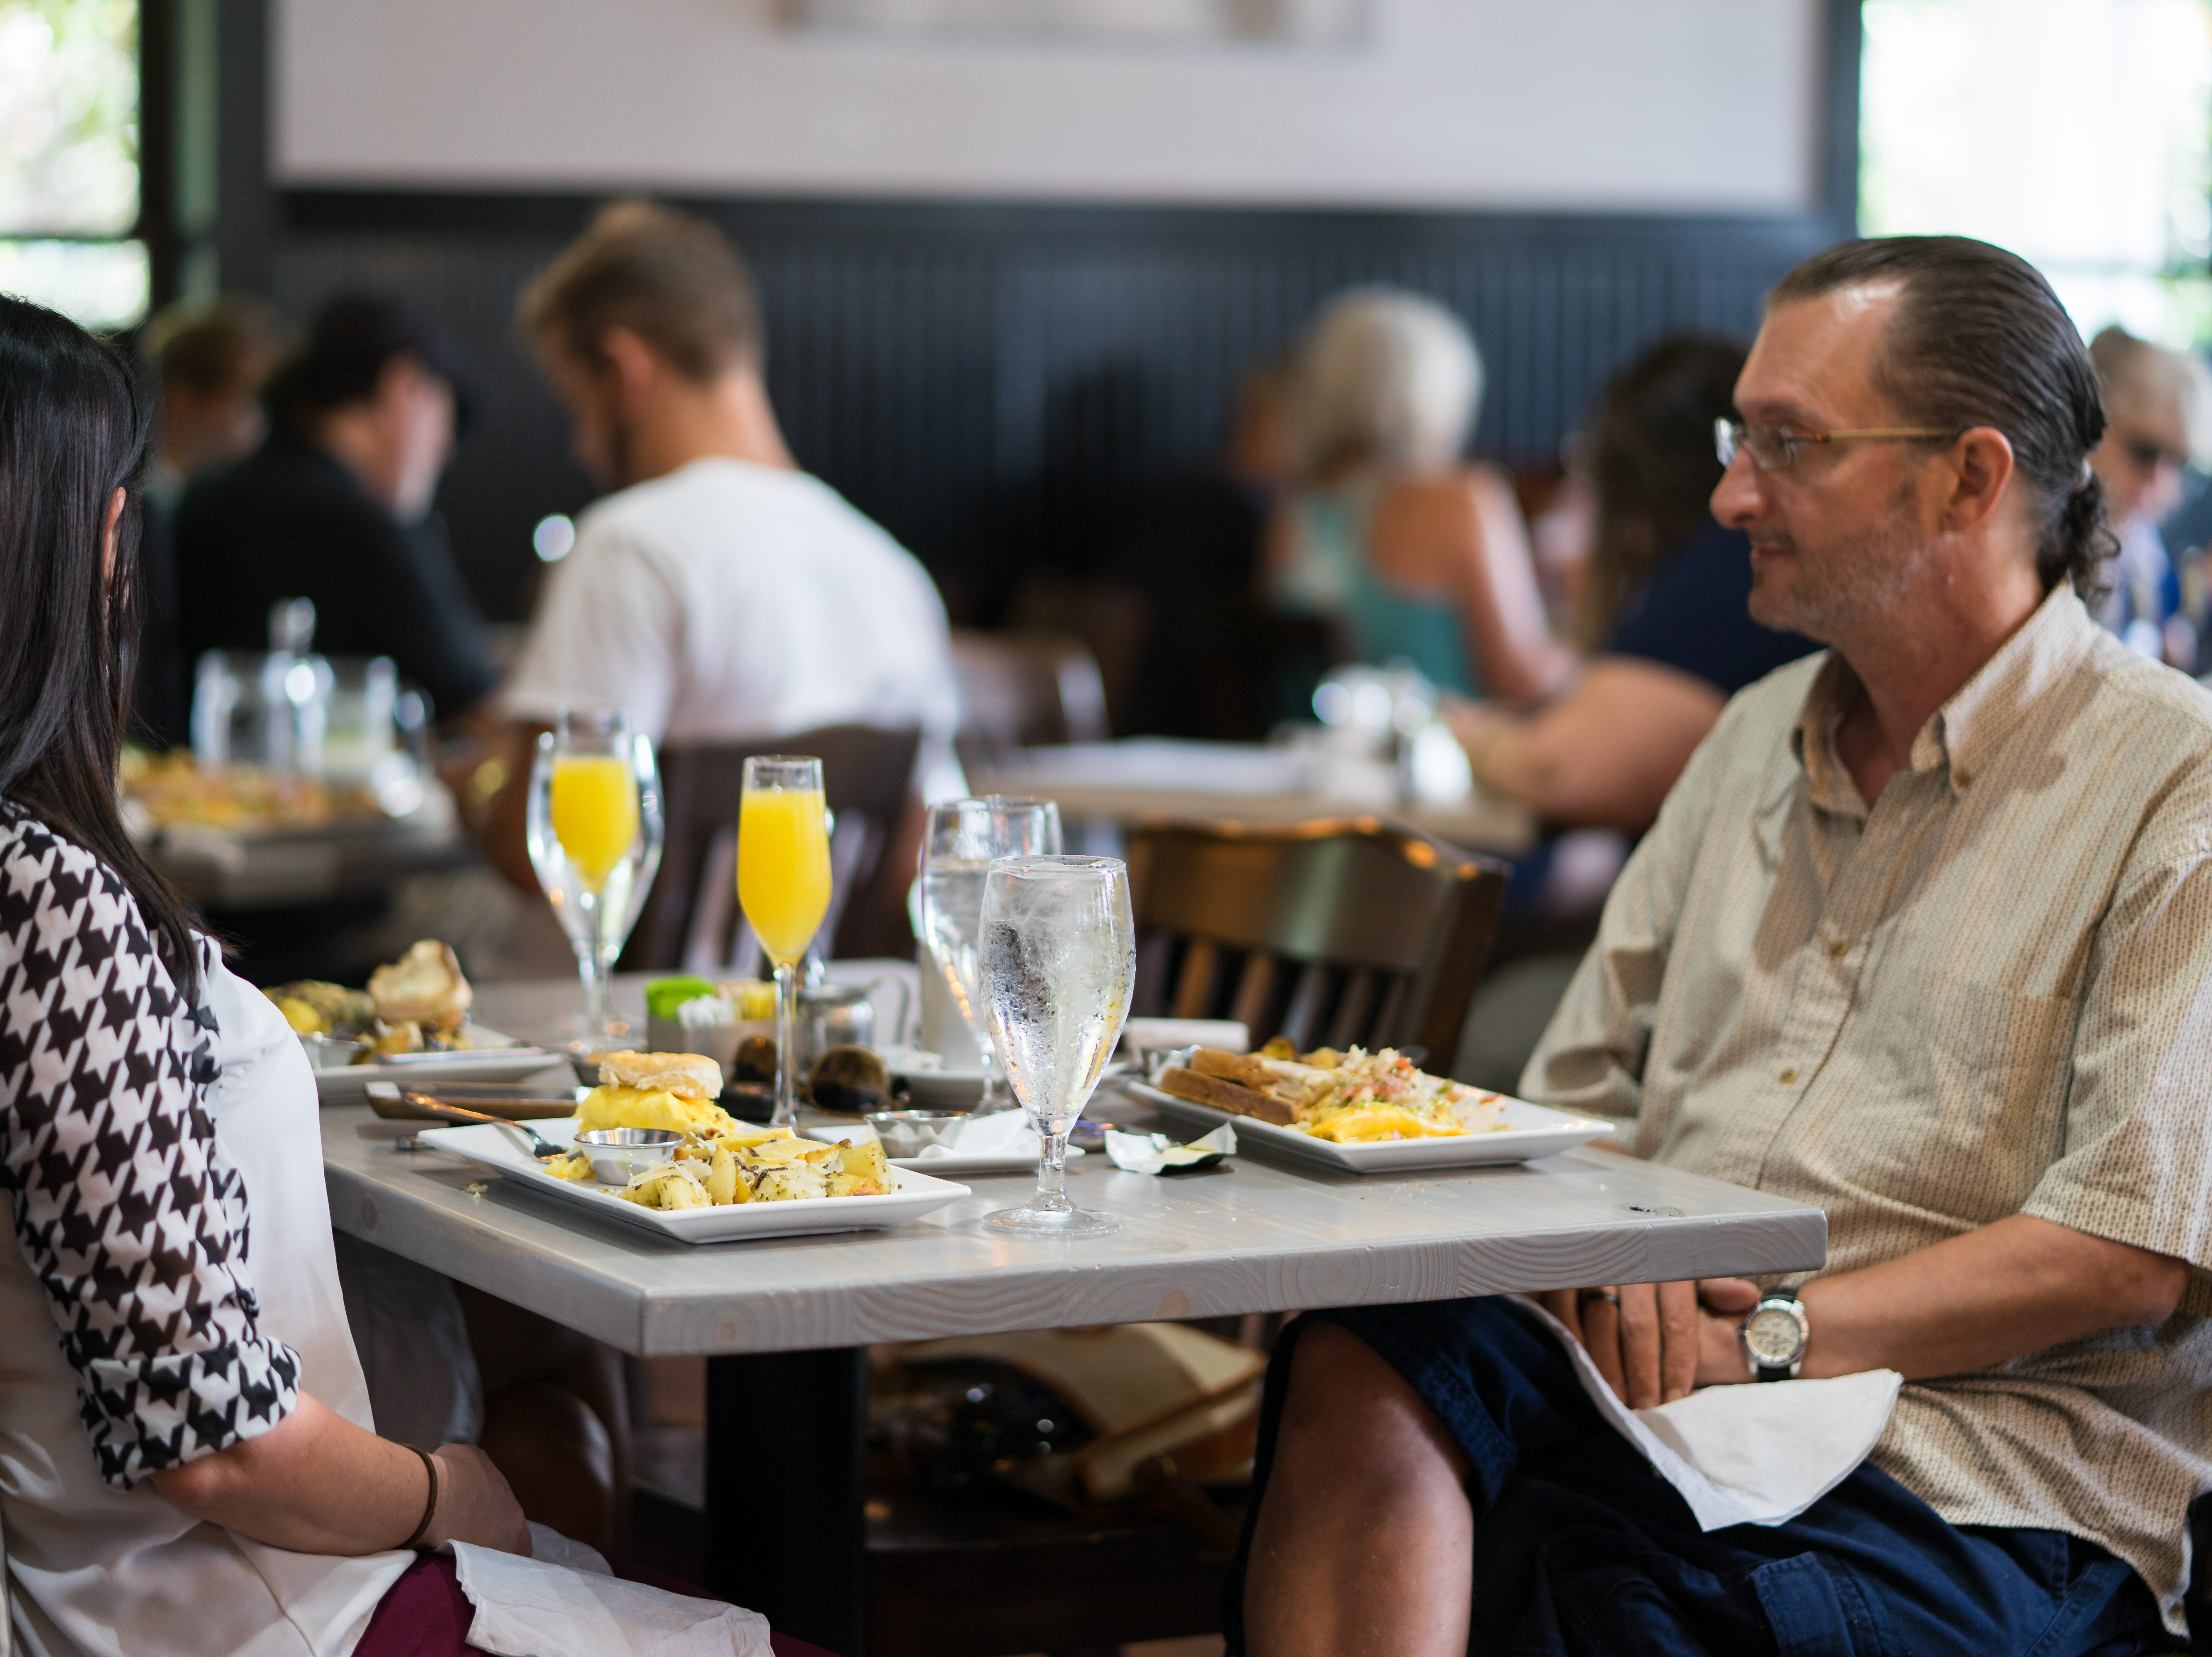 Tripp Wogan, right, and Jennifer Miller sit down for a Friday brunch at the newly reopened George Bistro + Bar on Sept. 28, 2018.